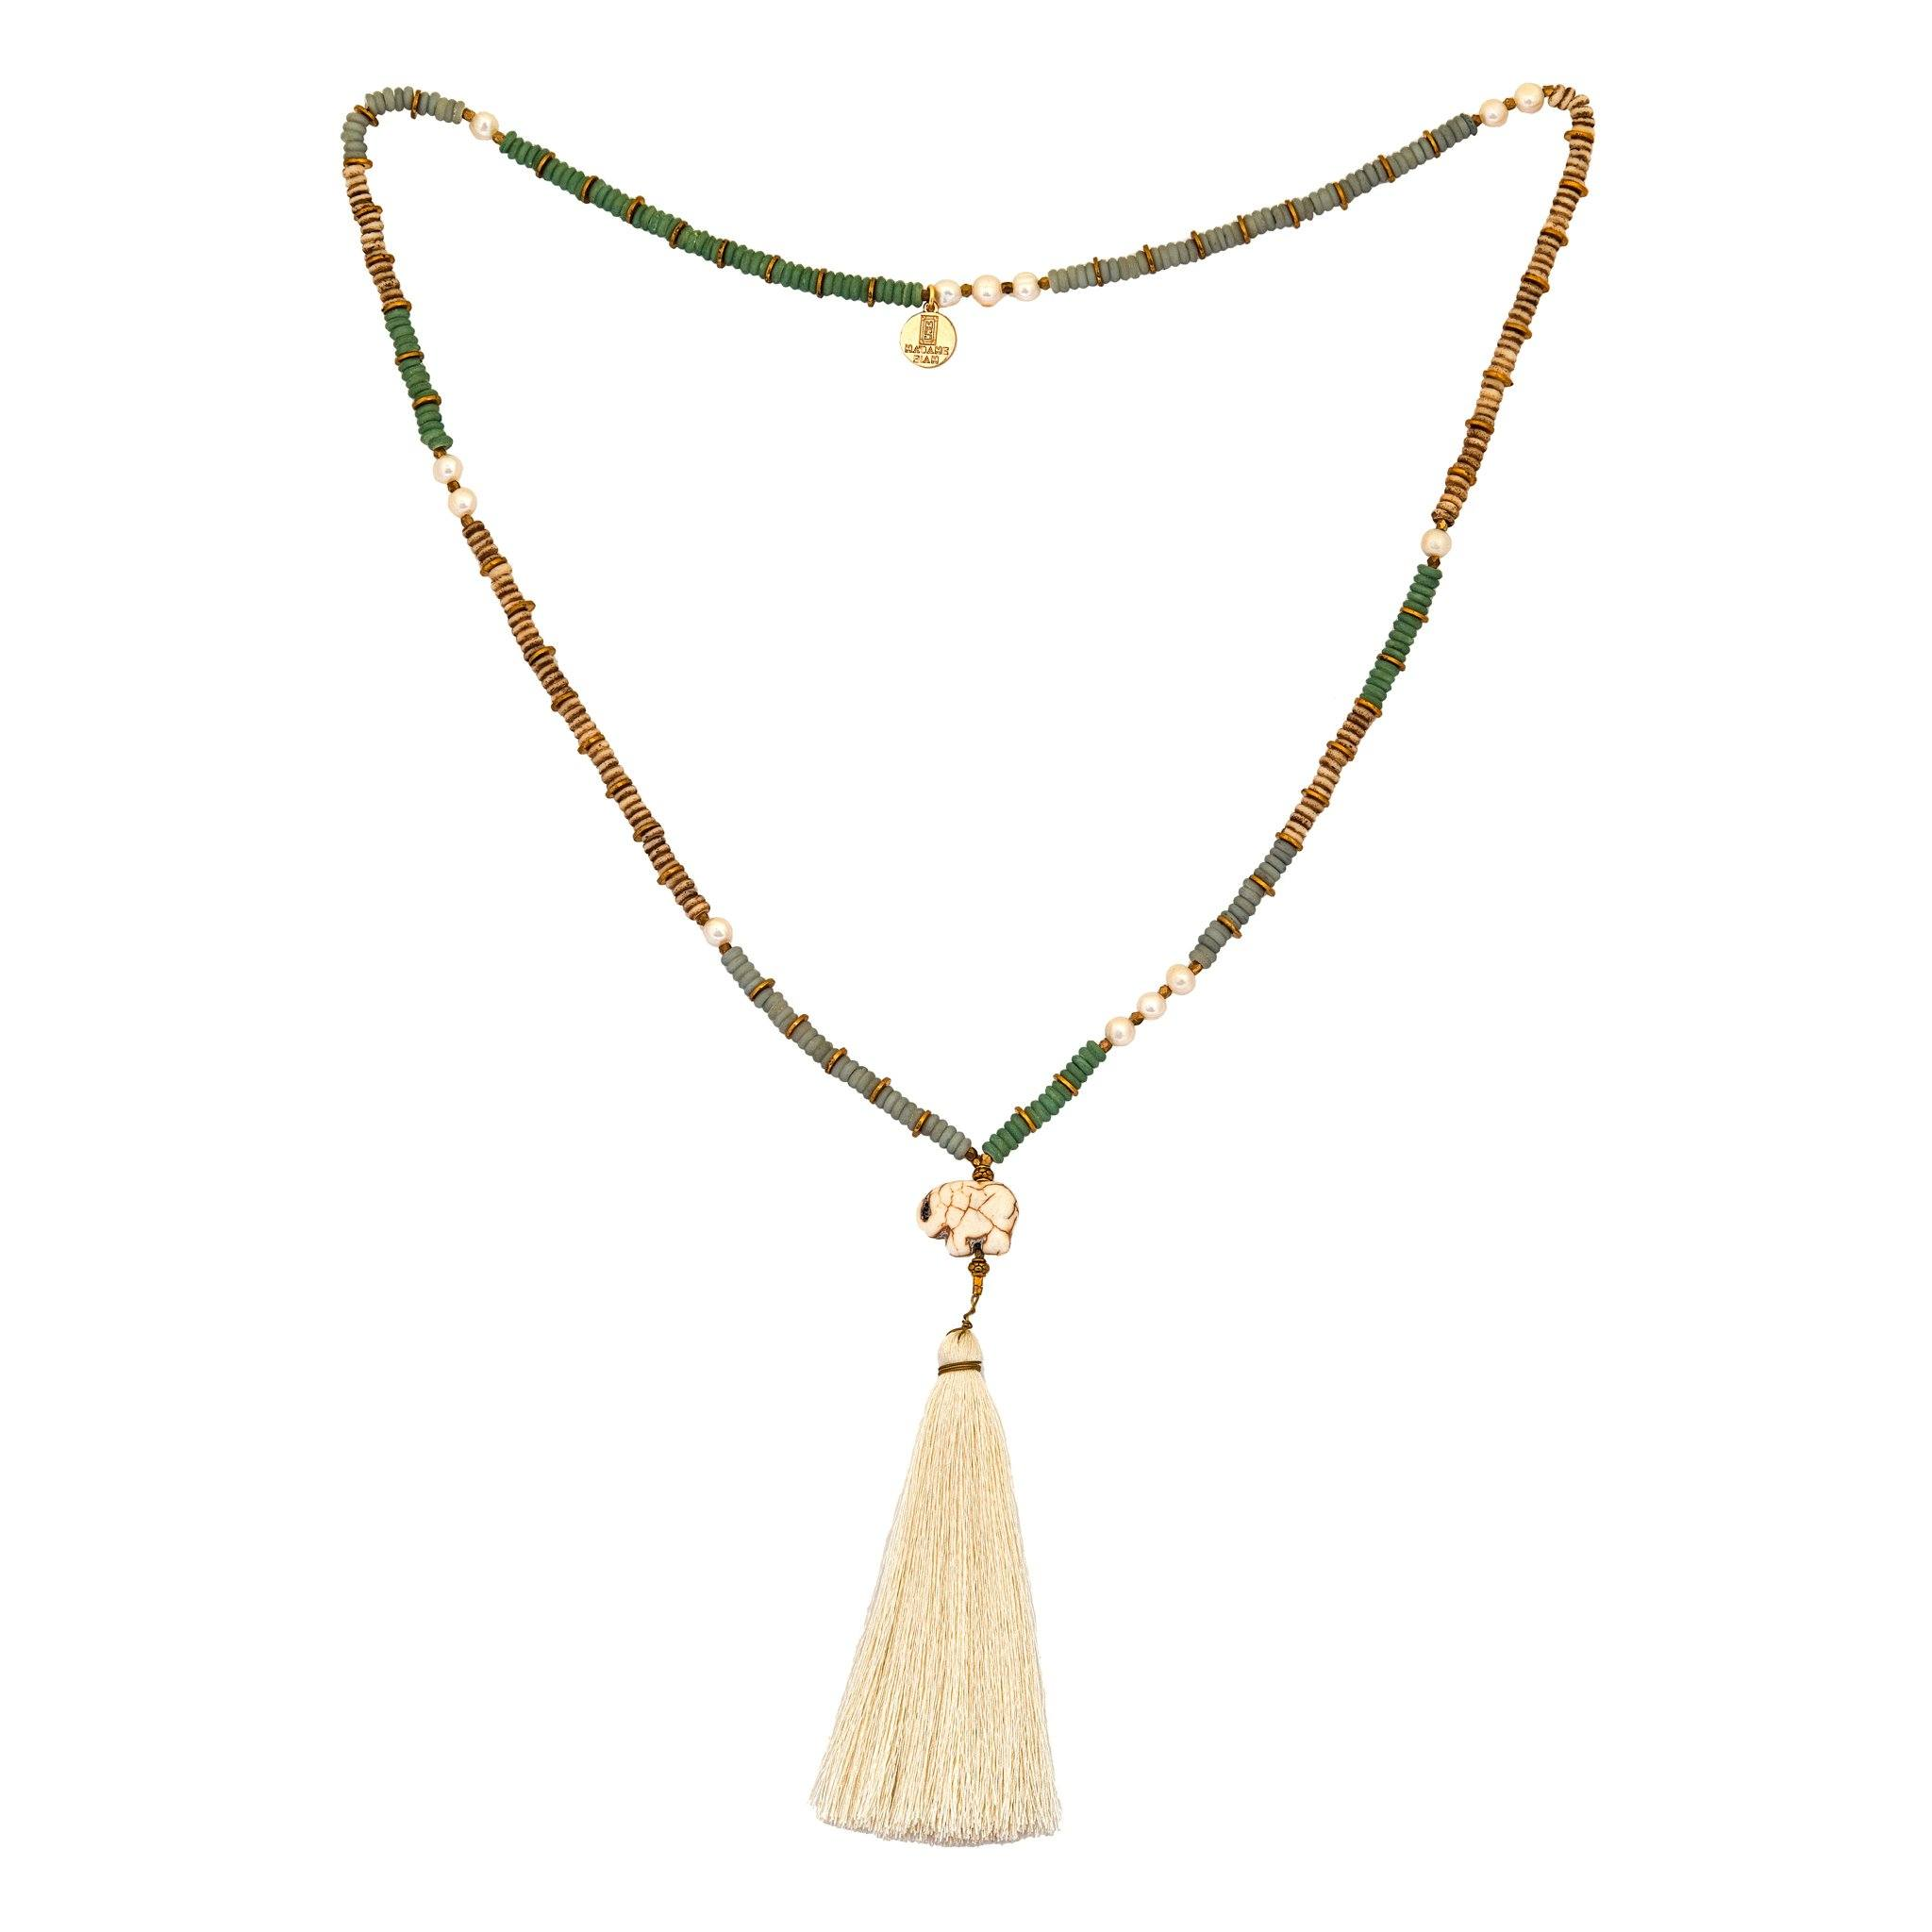 CHANG pearl tassel necklace